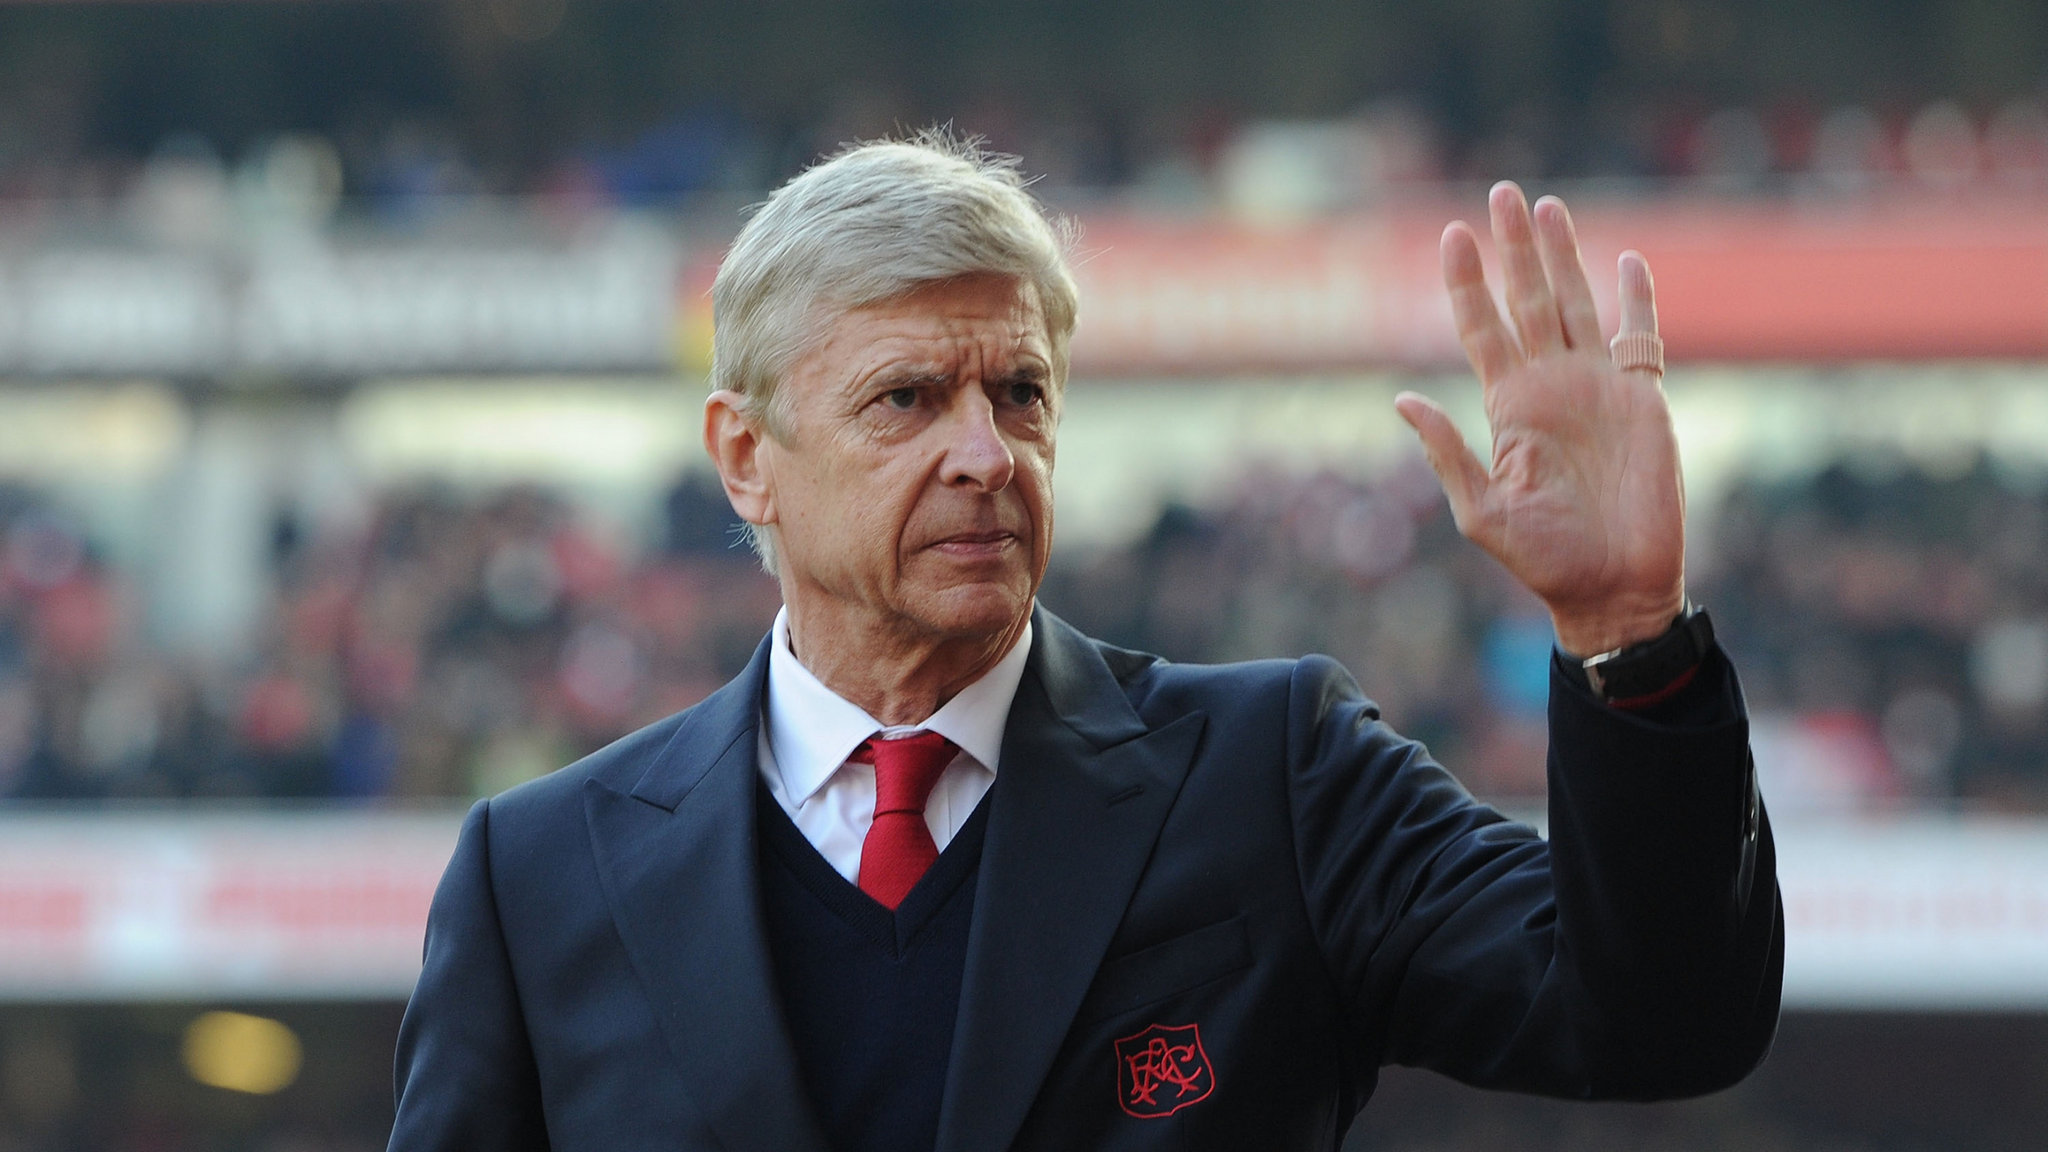 Arsene Wenger stepping down as Arsenal manager at end of the season